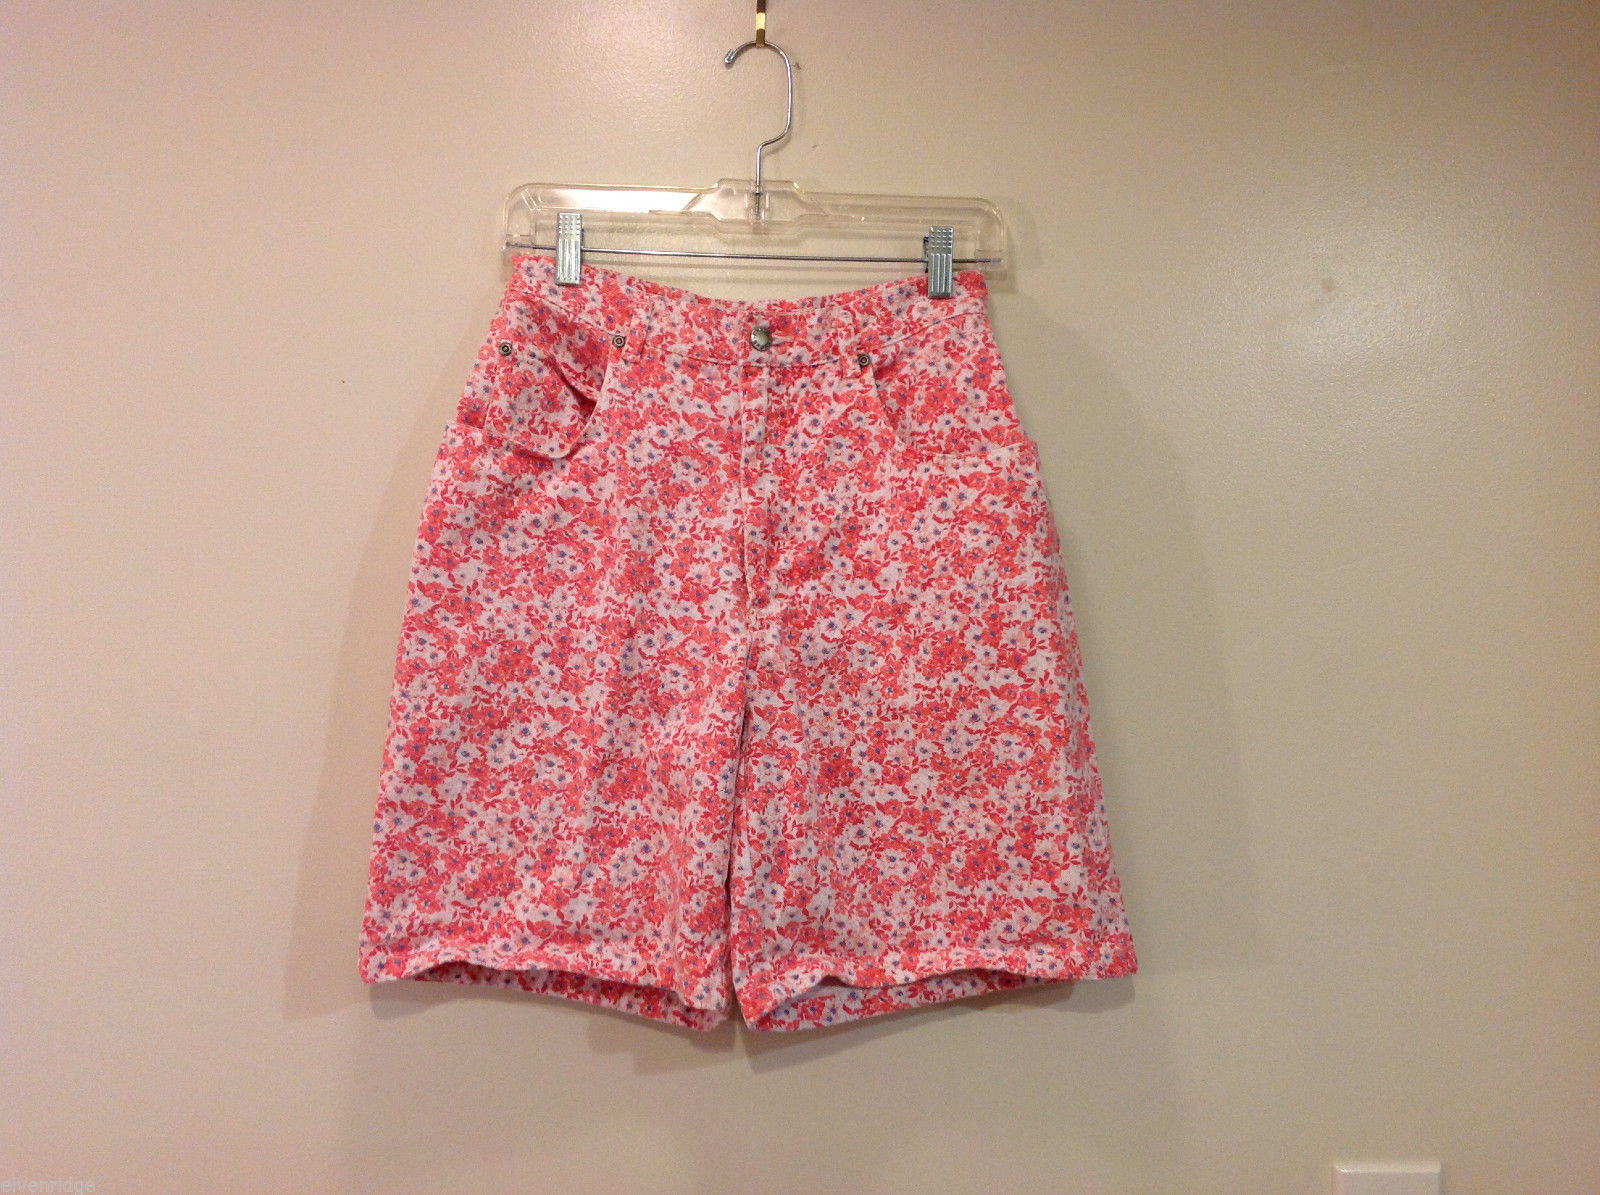 Chaus Sport Pink Flowers Jean 100% Cotton Shorts with Pockets, Size 10